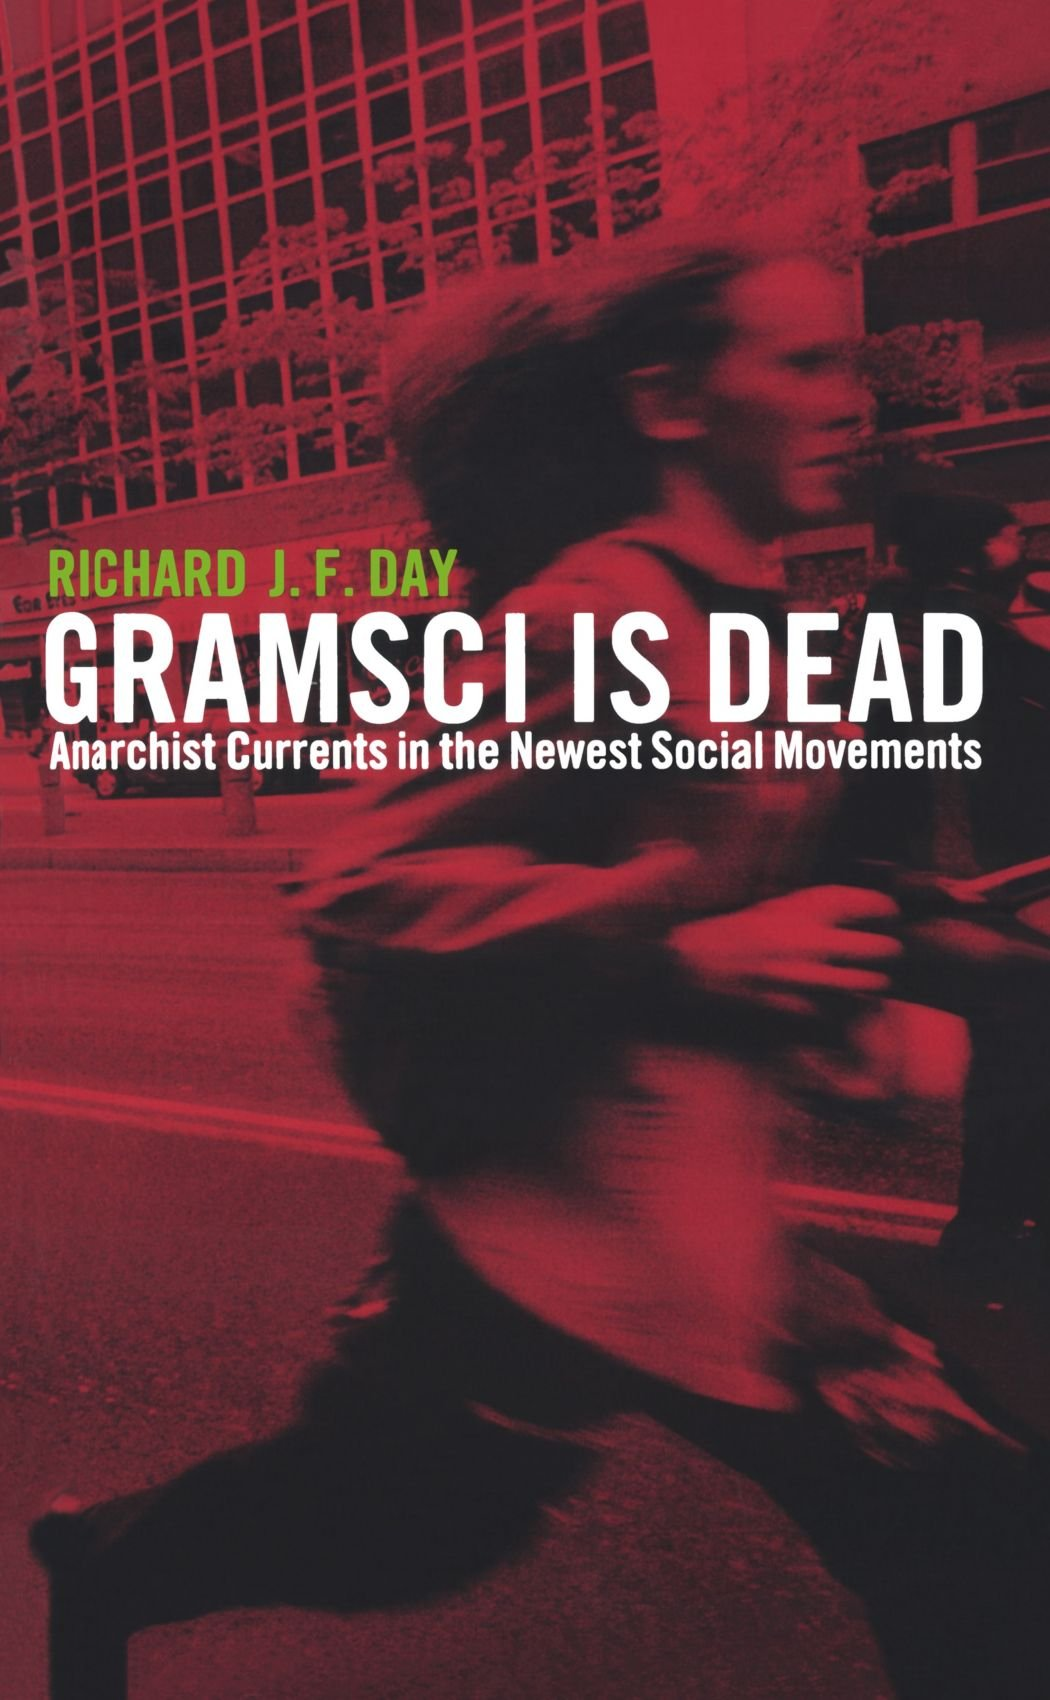 Gramsci is Dead: Anarchist Currents in the Newest Social Movements, Richard J.F. Day